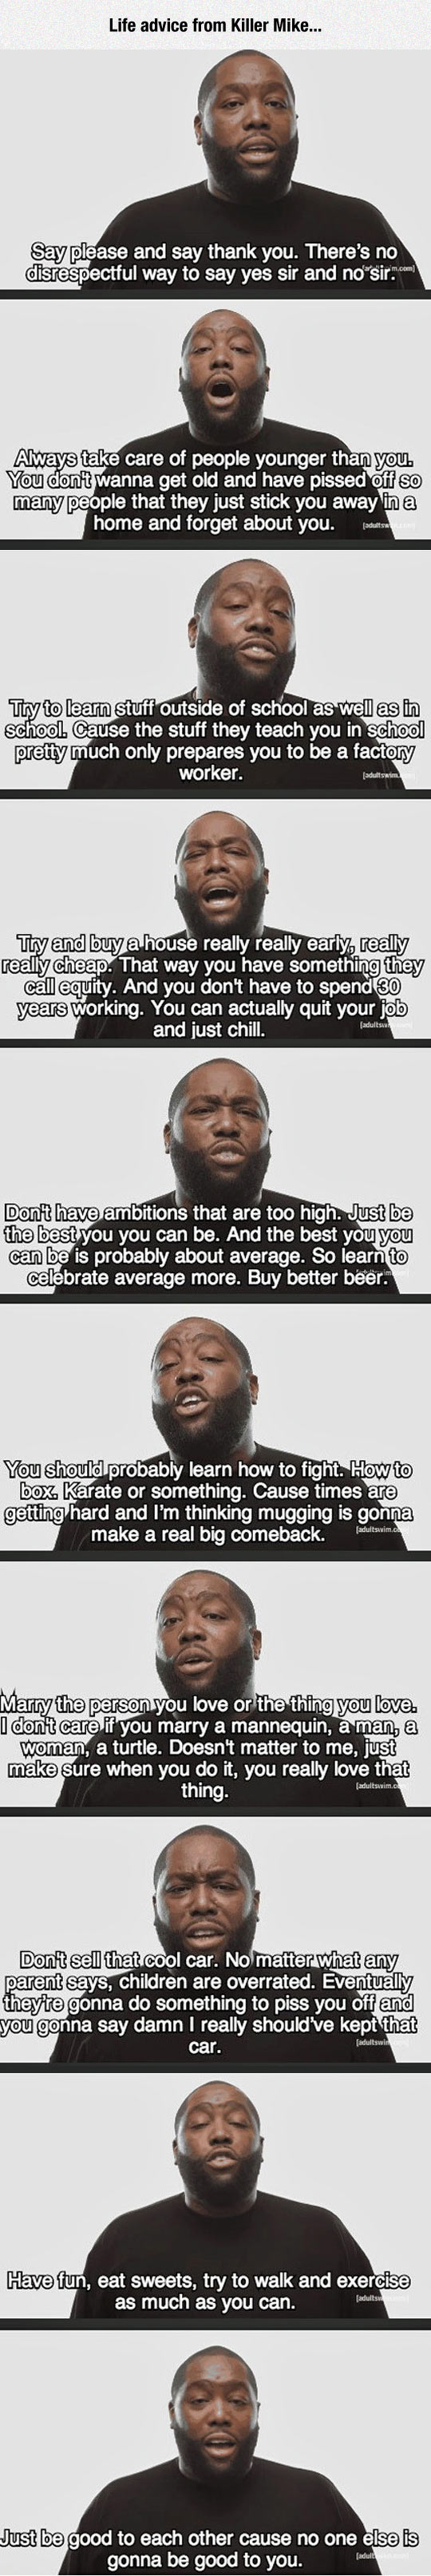 funny-life-advice-Killer-Mike-thoughts